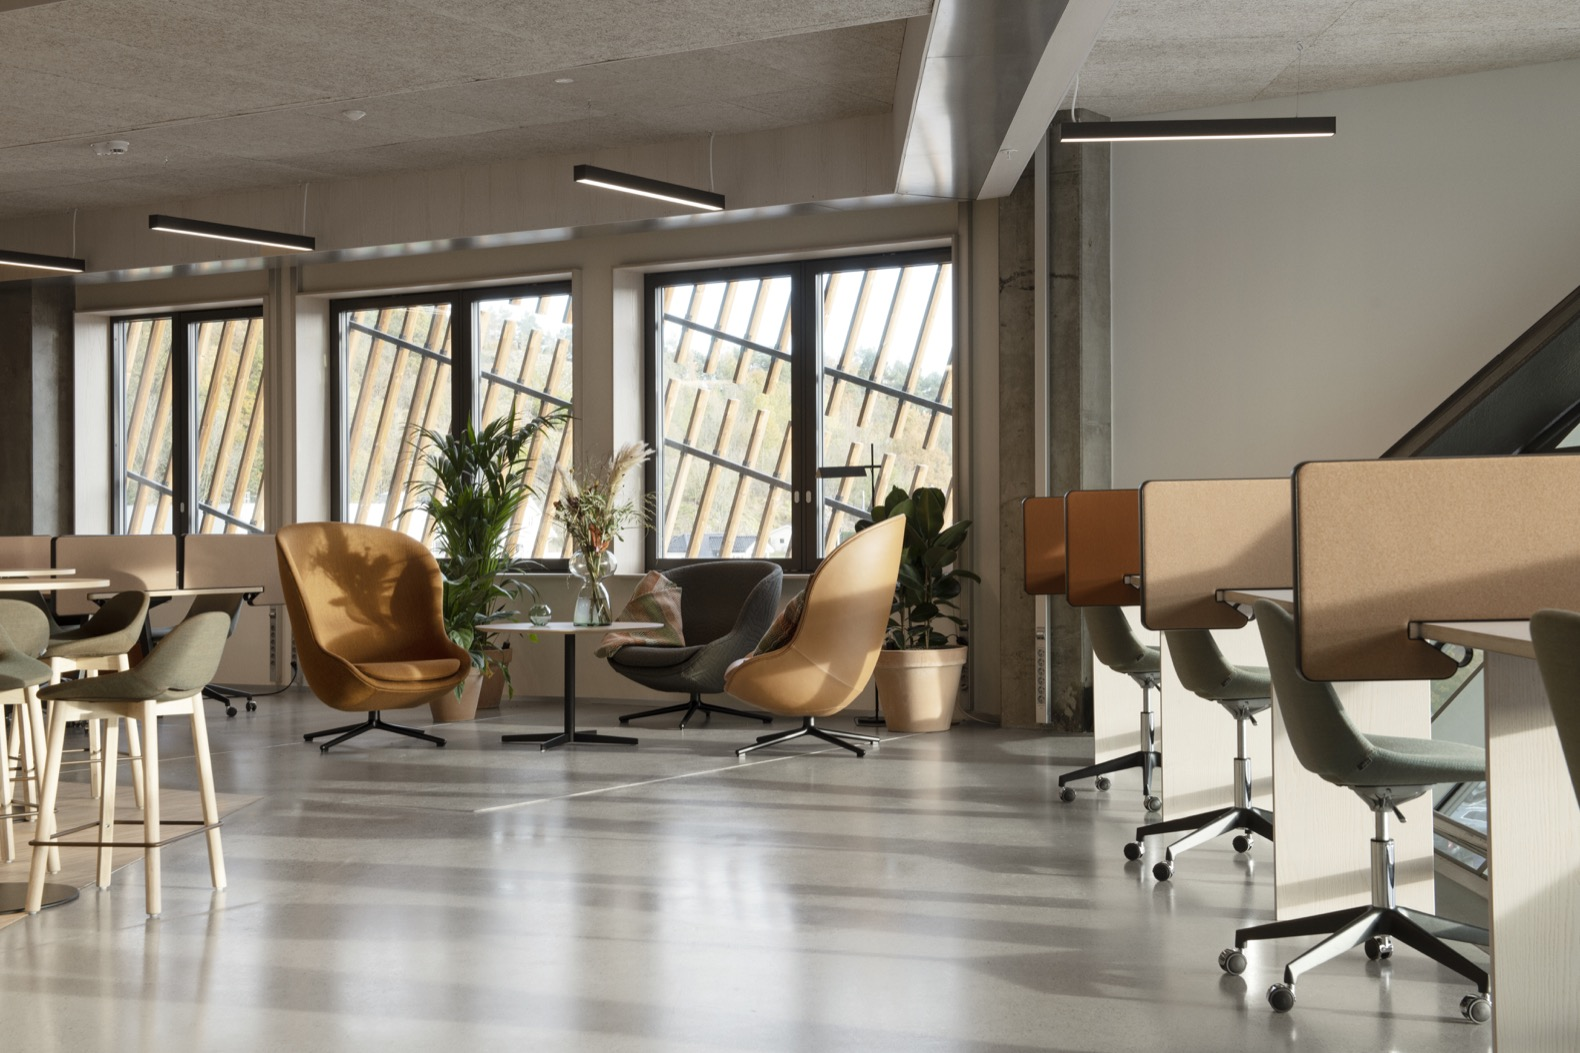 tan chairs in office space